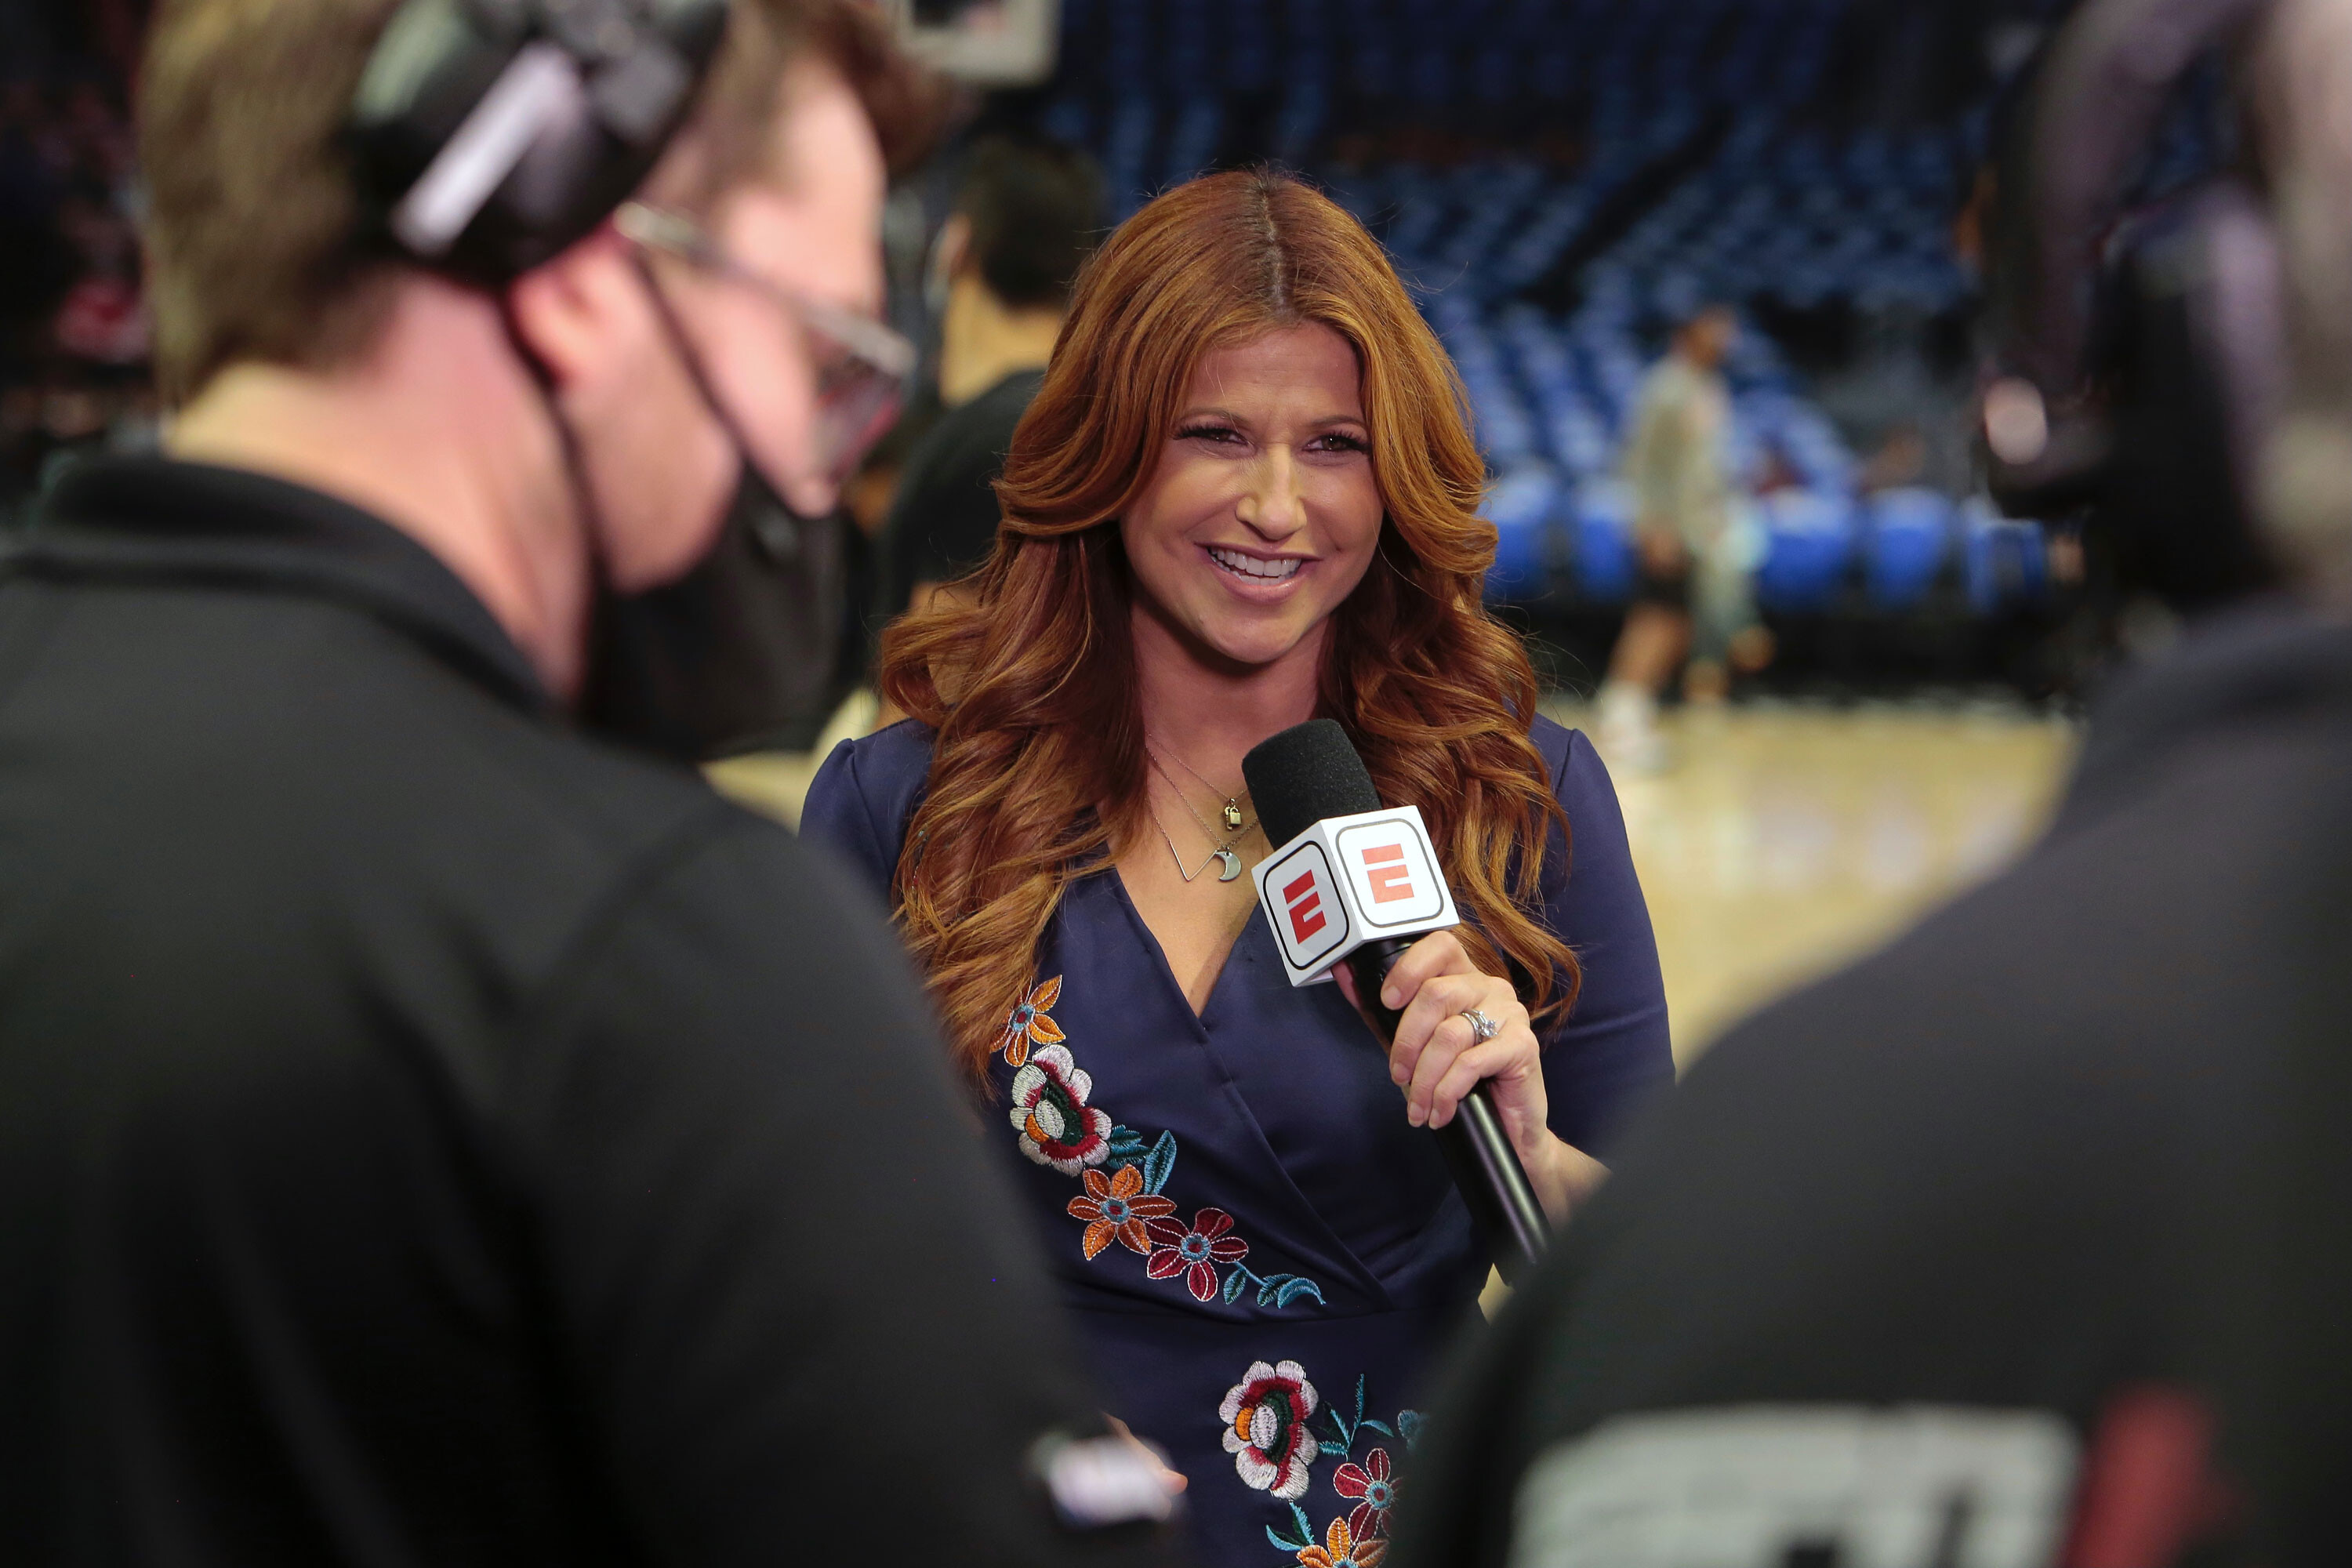 ESPN attempts to contain controversy embroiling the network as NBA Finals get underway